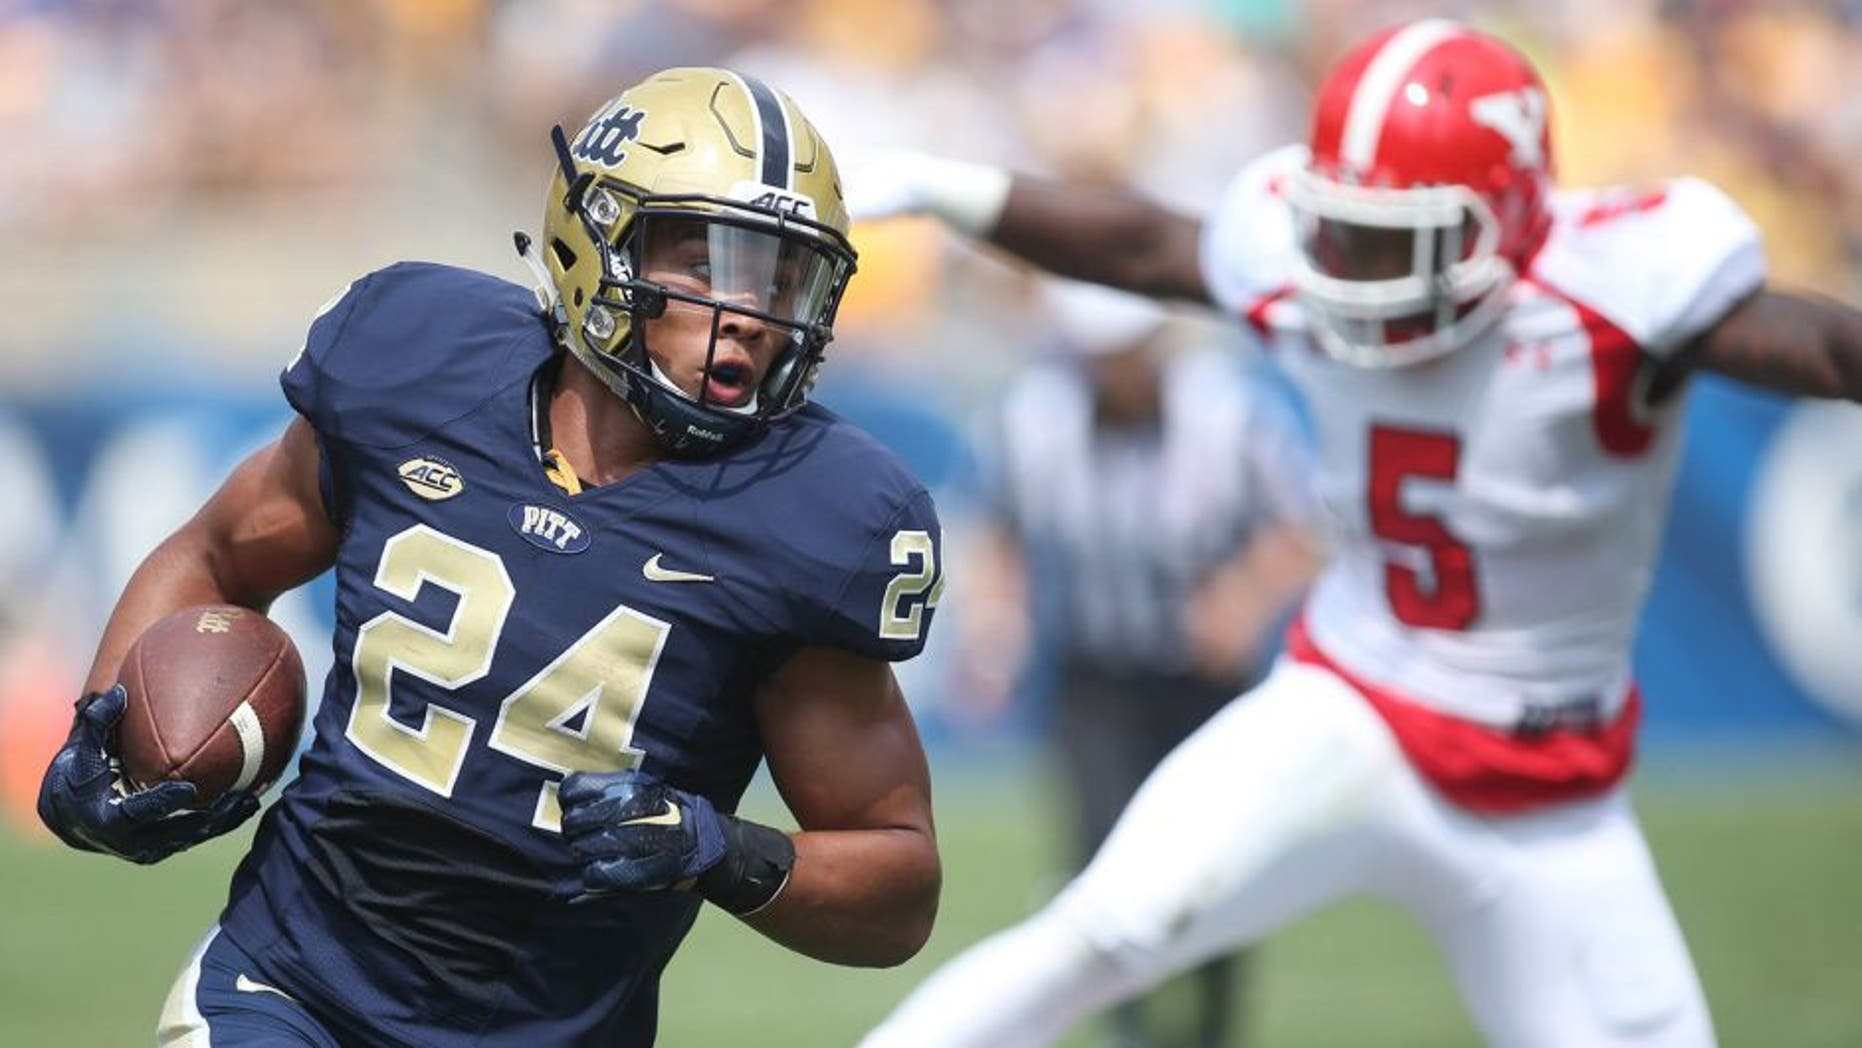 Sep 5, 2015; Pittsburgh, PA, USA; Pittsburgh Panthers running back James Conner (24) carries the ball against the Youngstown State Penguins during the first half at Heinz Field. Mandatory Credit: Charles LeClaire-USA TODAY Sports